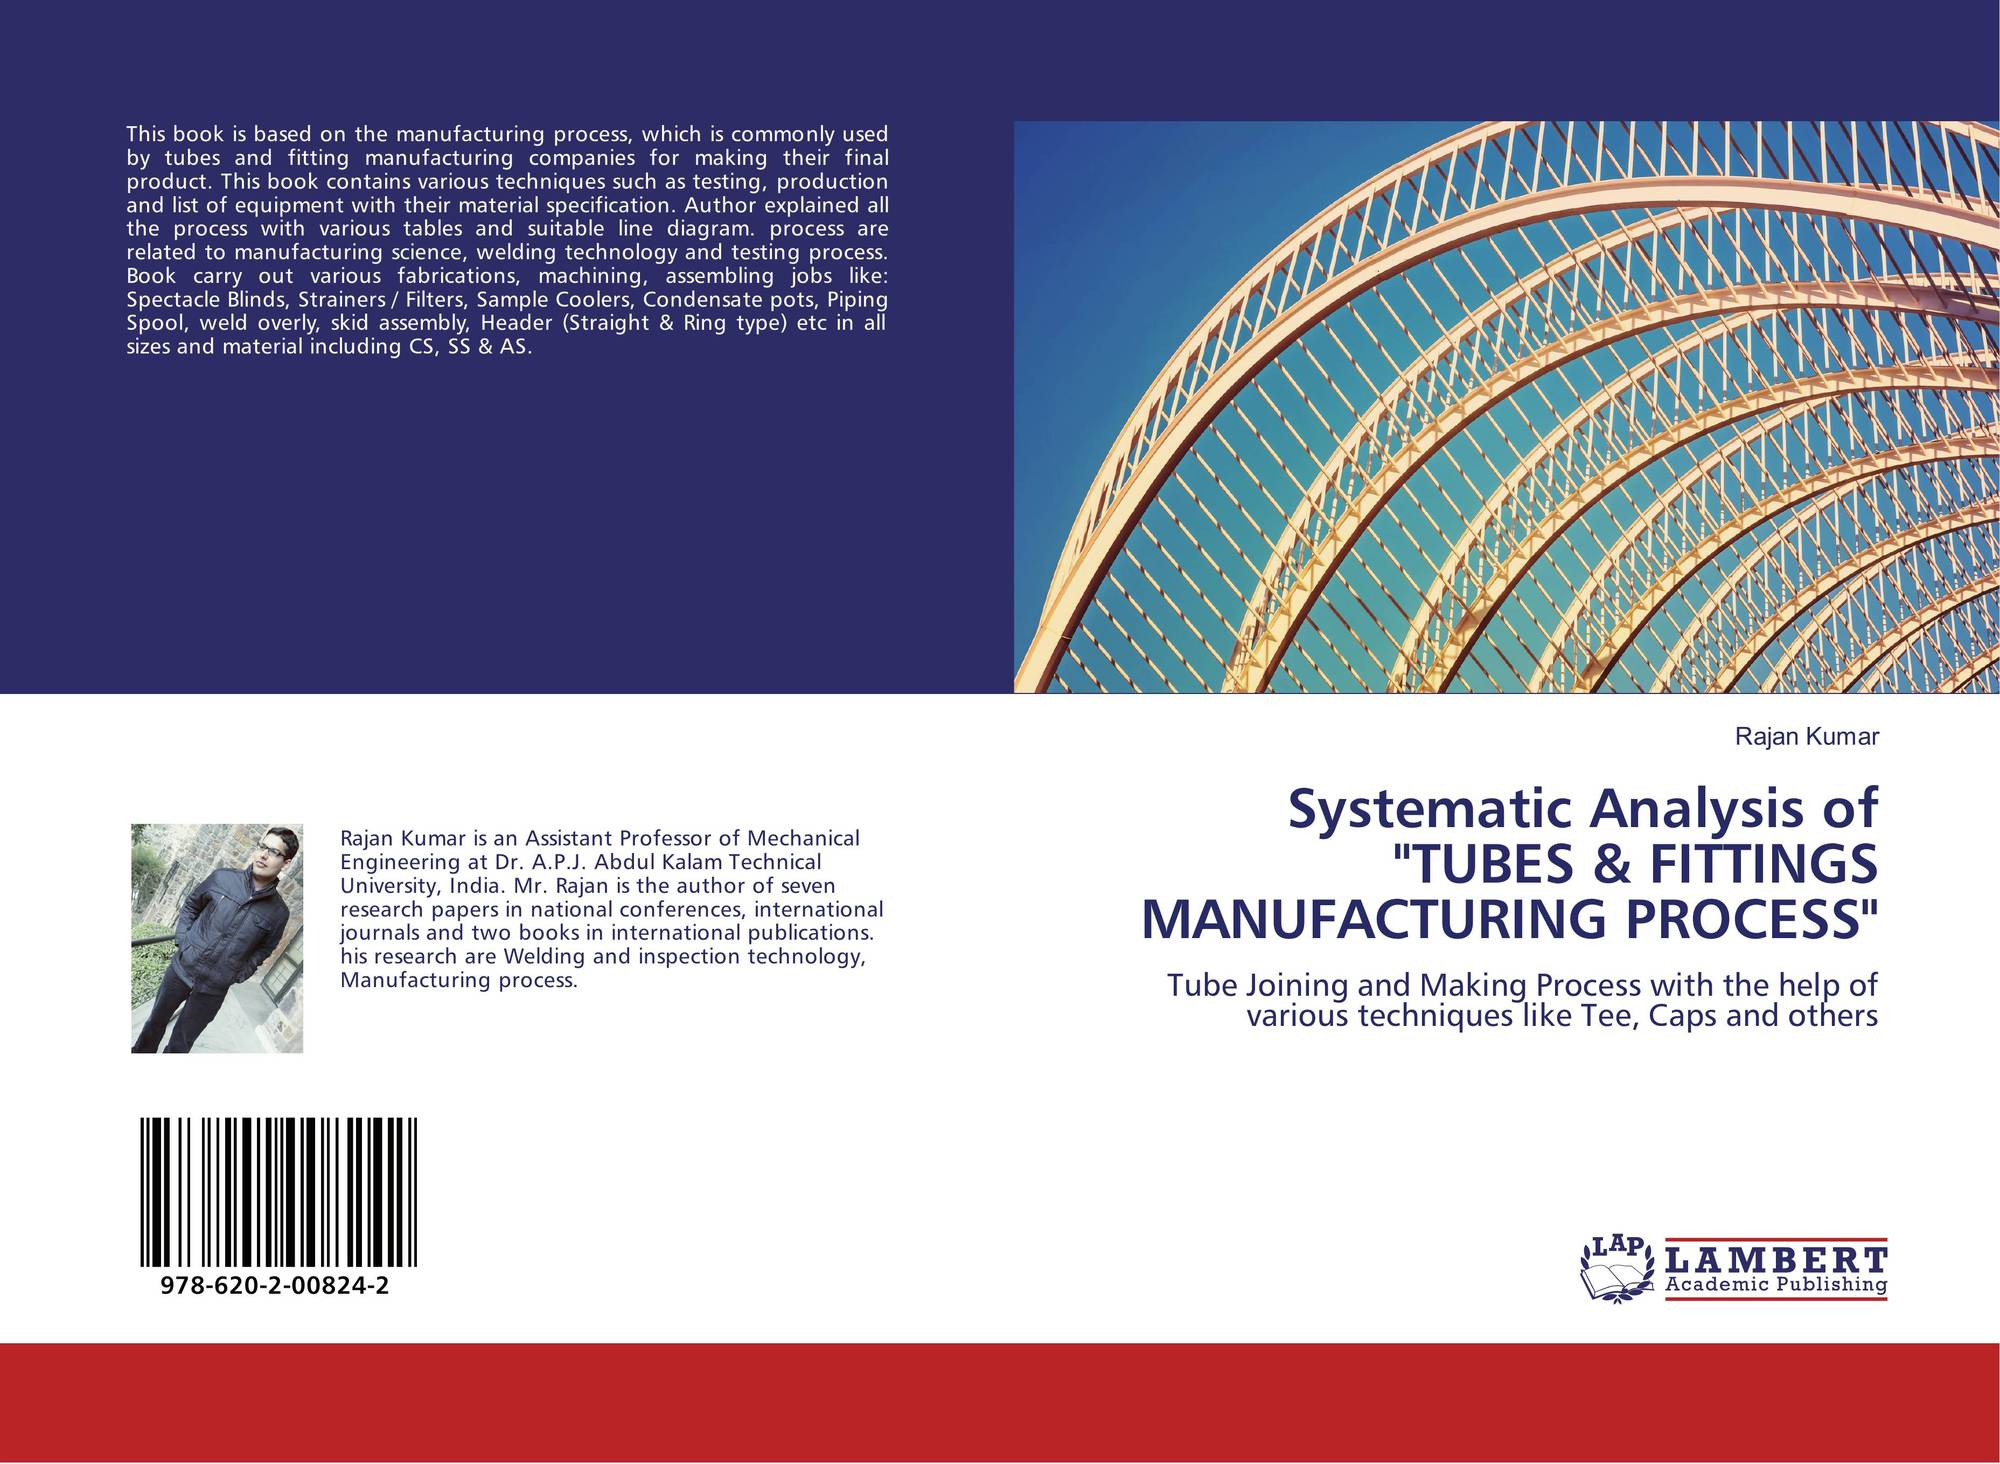 Systematic Analysis of